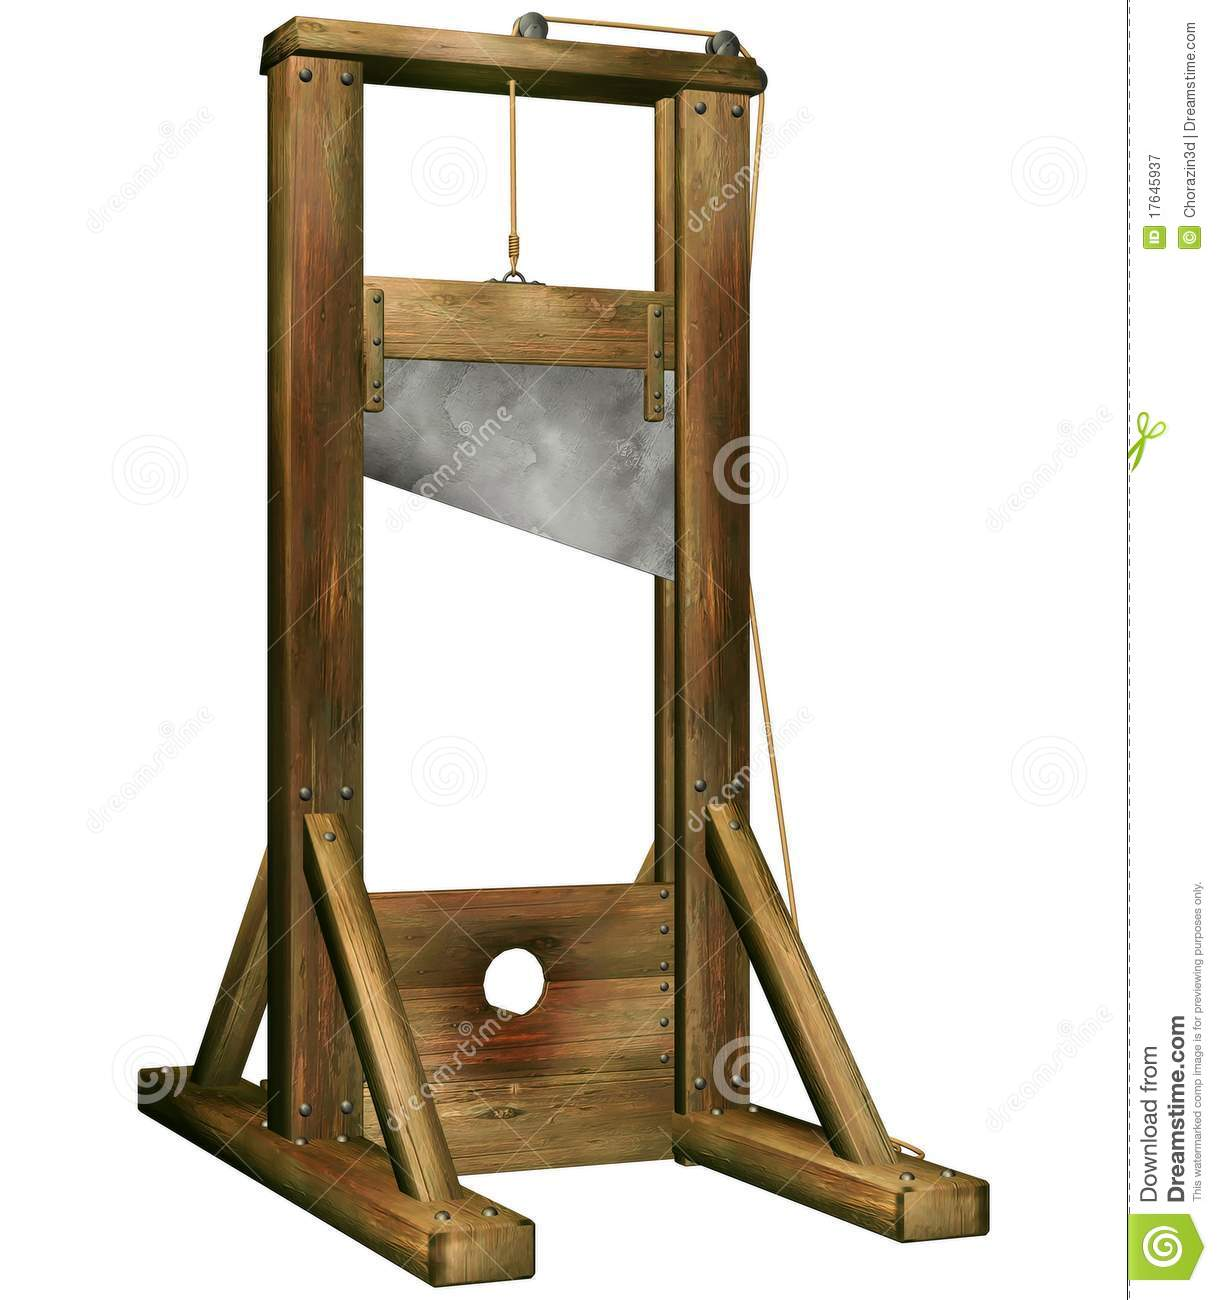 Fantasy Guillotine Royalty Free Stock Photography - Image: 17645937